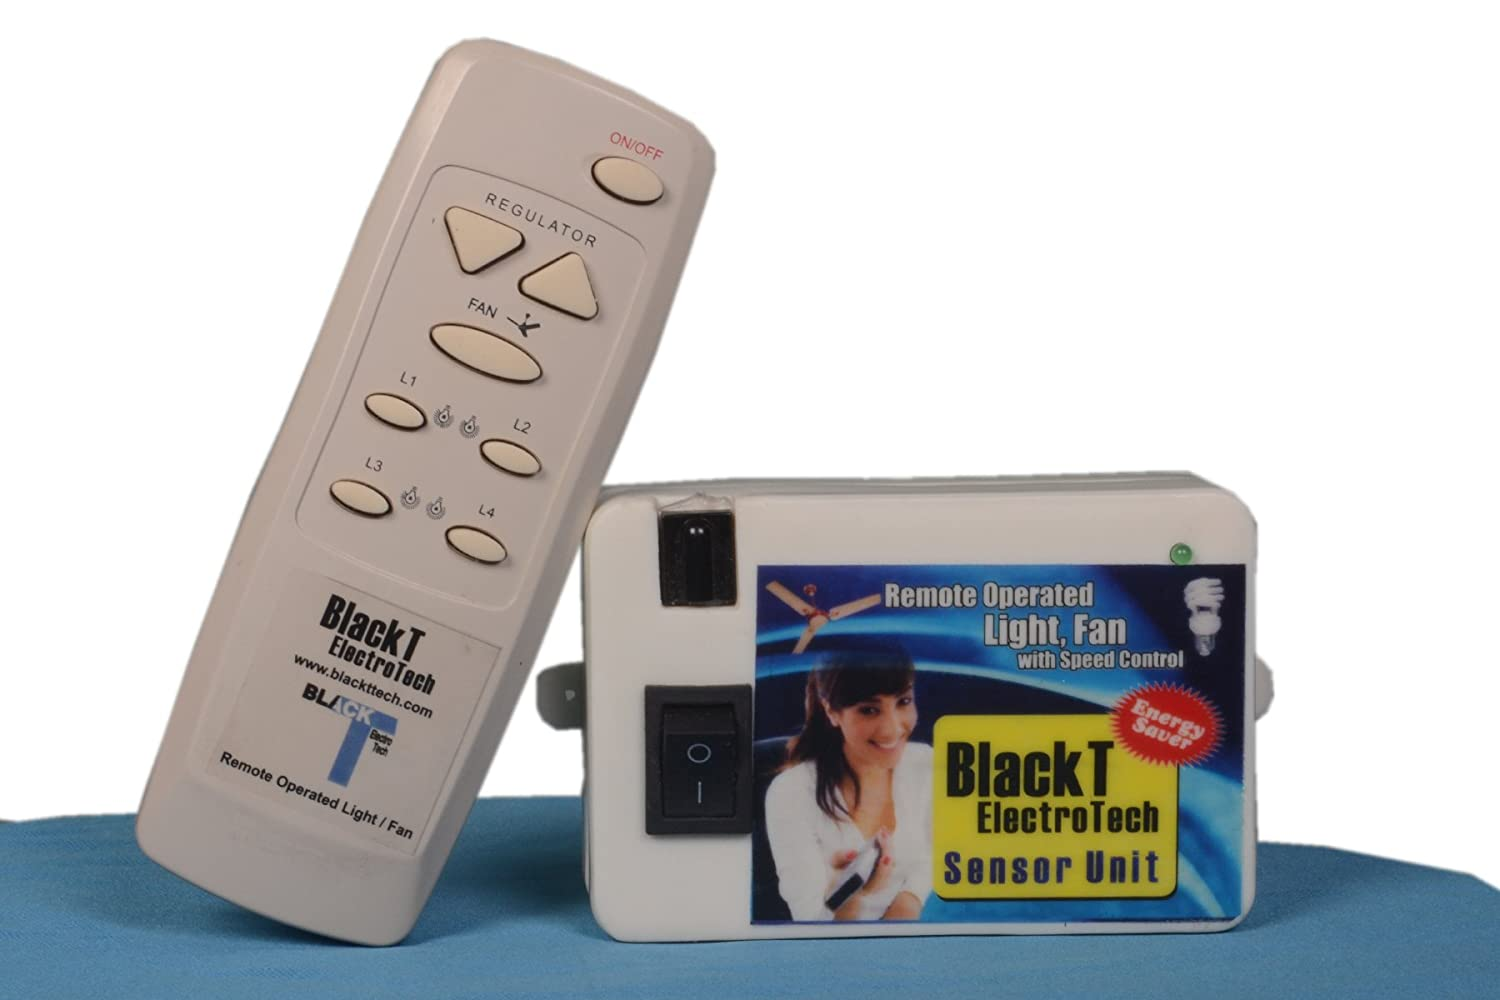 Buy Blackt Electrotech Wireless Remote Control Switch For Light Fan Circuit Multiple Appliances Homemade Home Automation Online At Low Prices In India